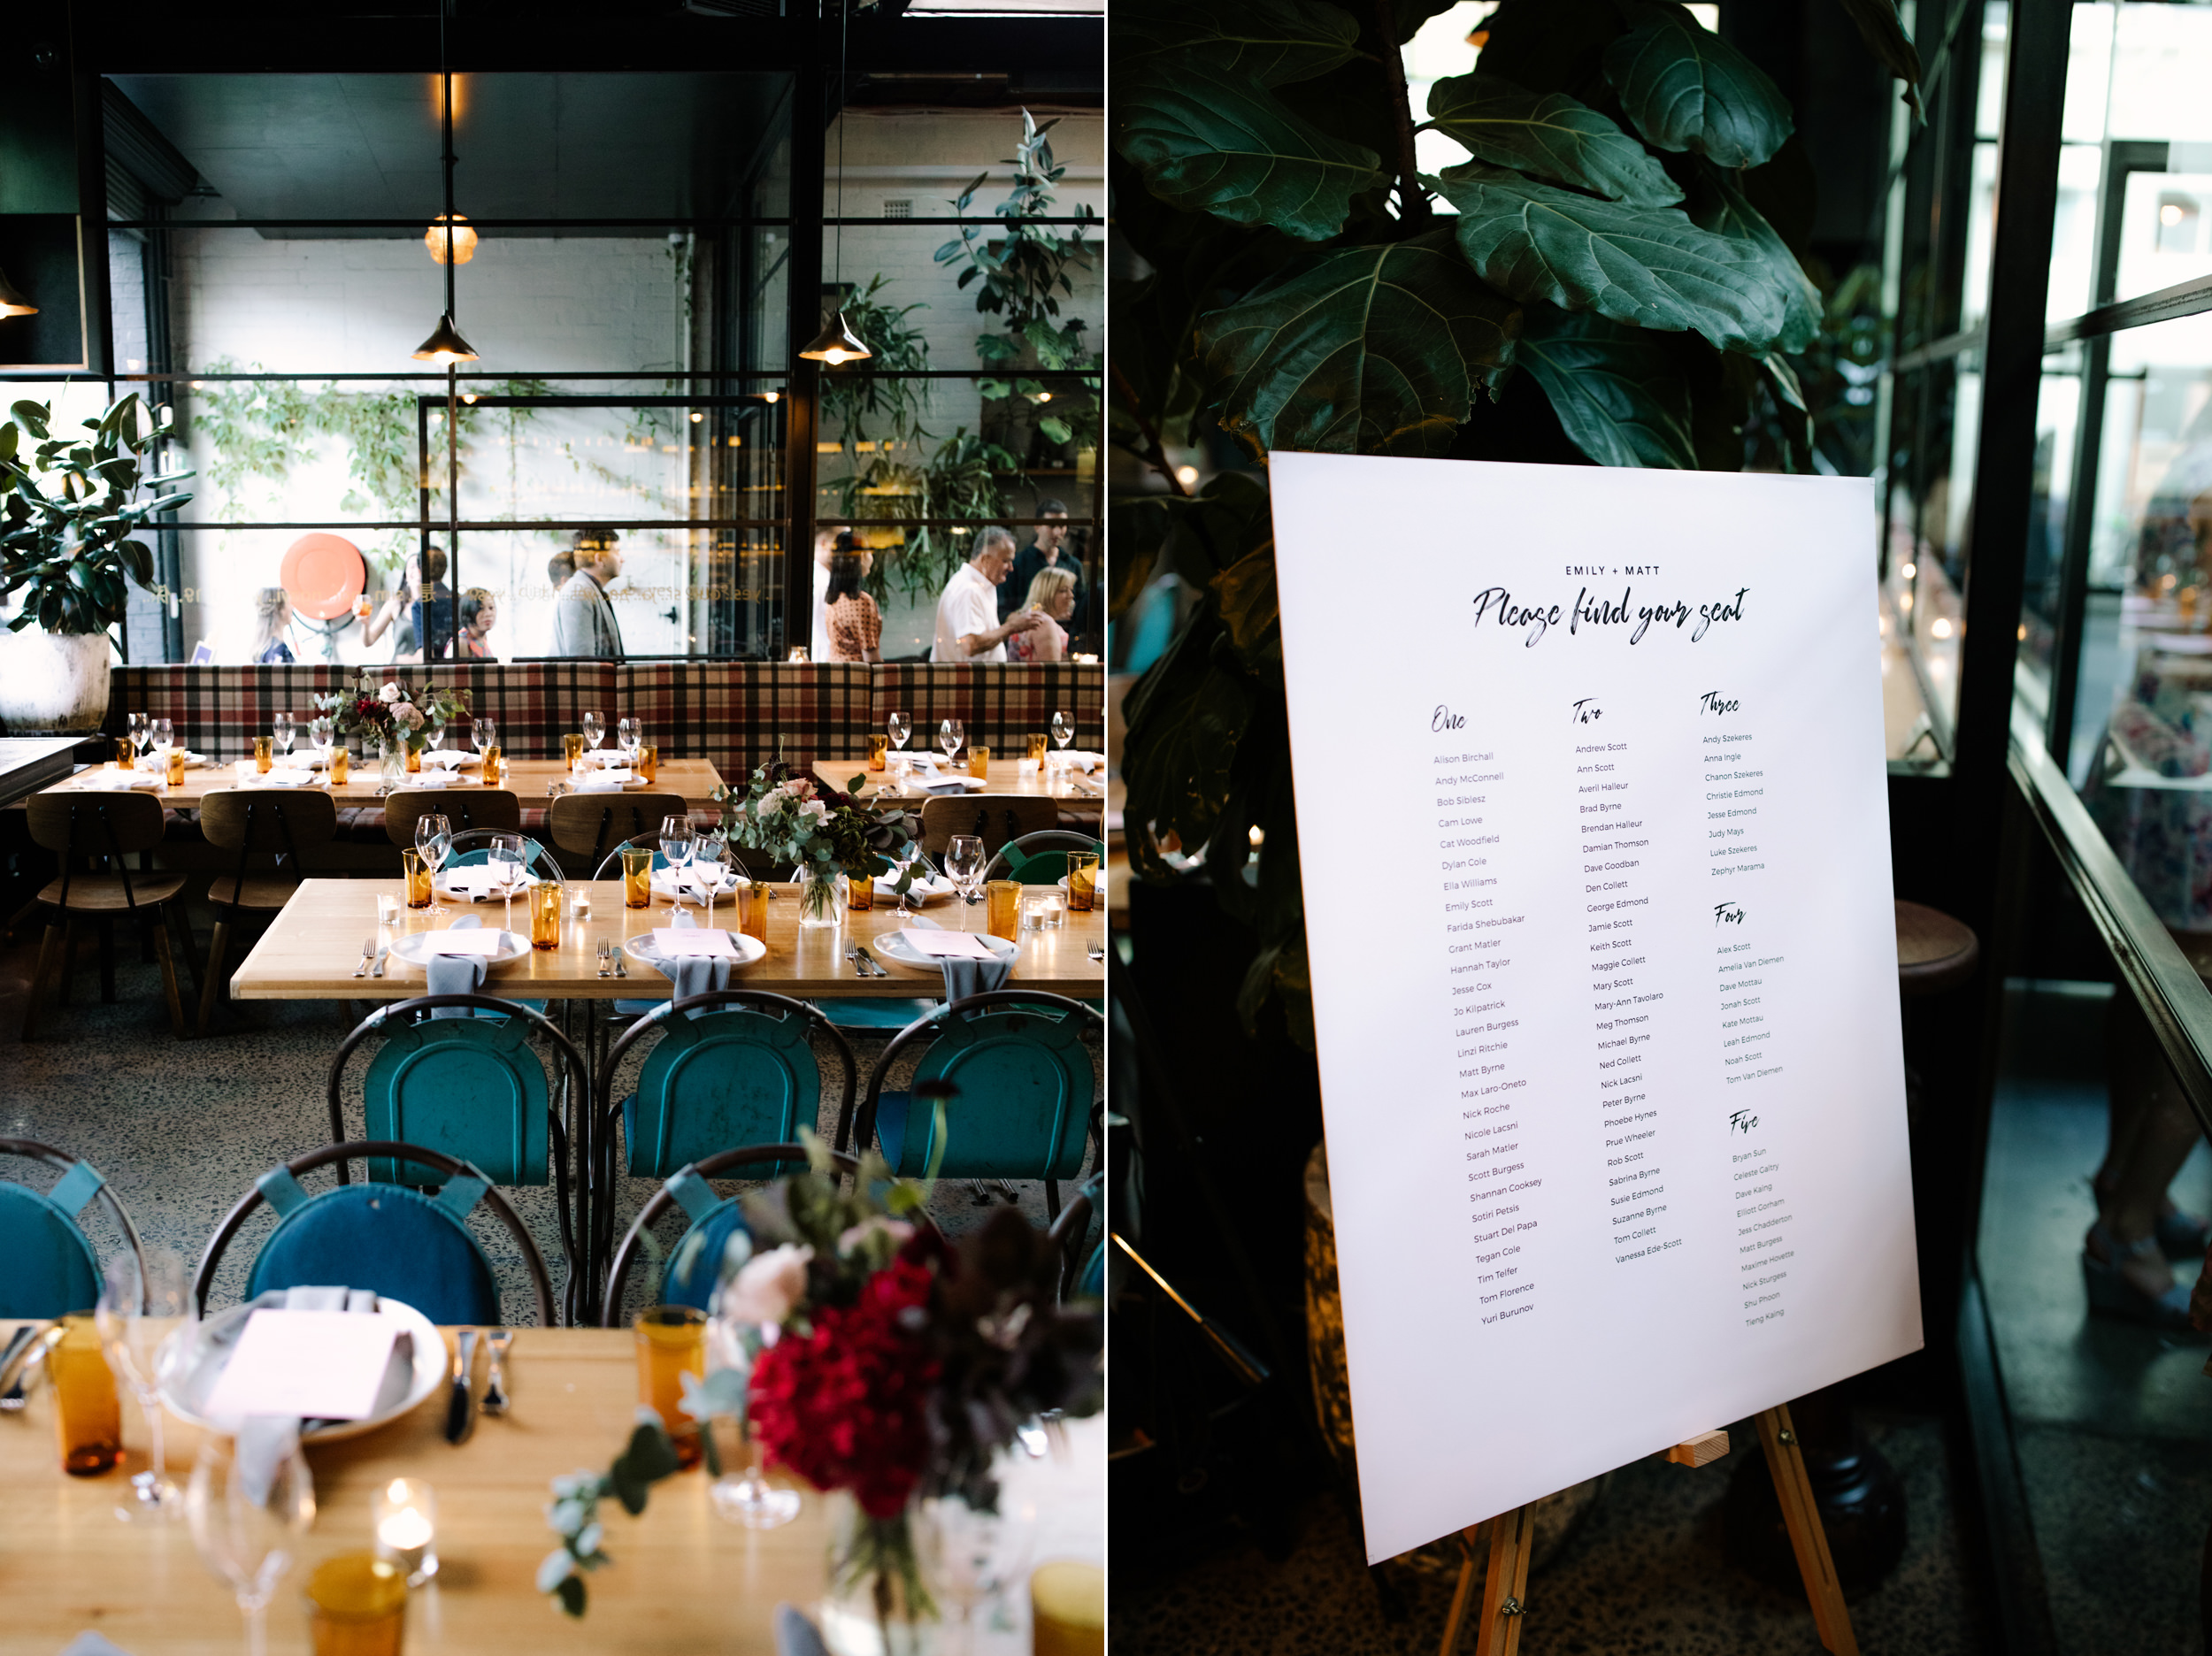 I_Got_You_Babe_Weddings_Emily_Matt_Rupert_Glasshaus_Melbourne0140.JPG